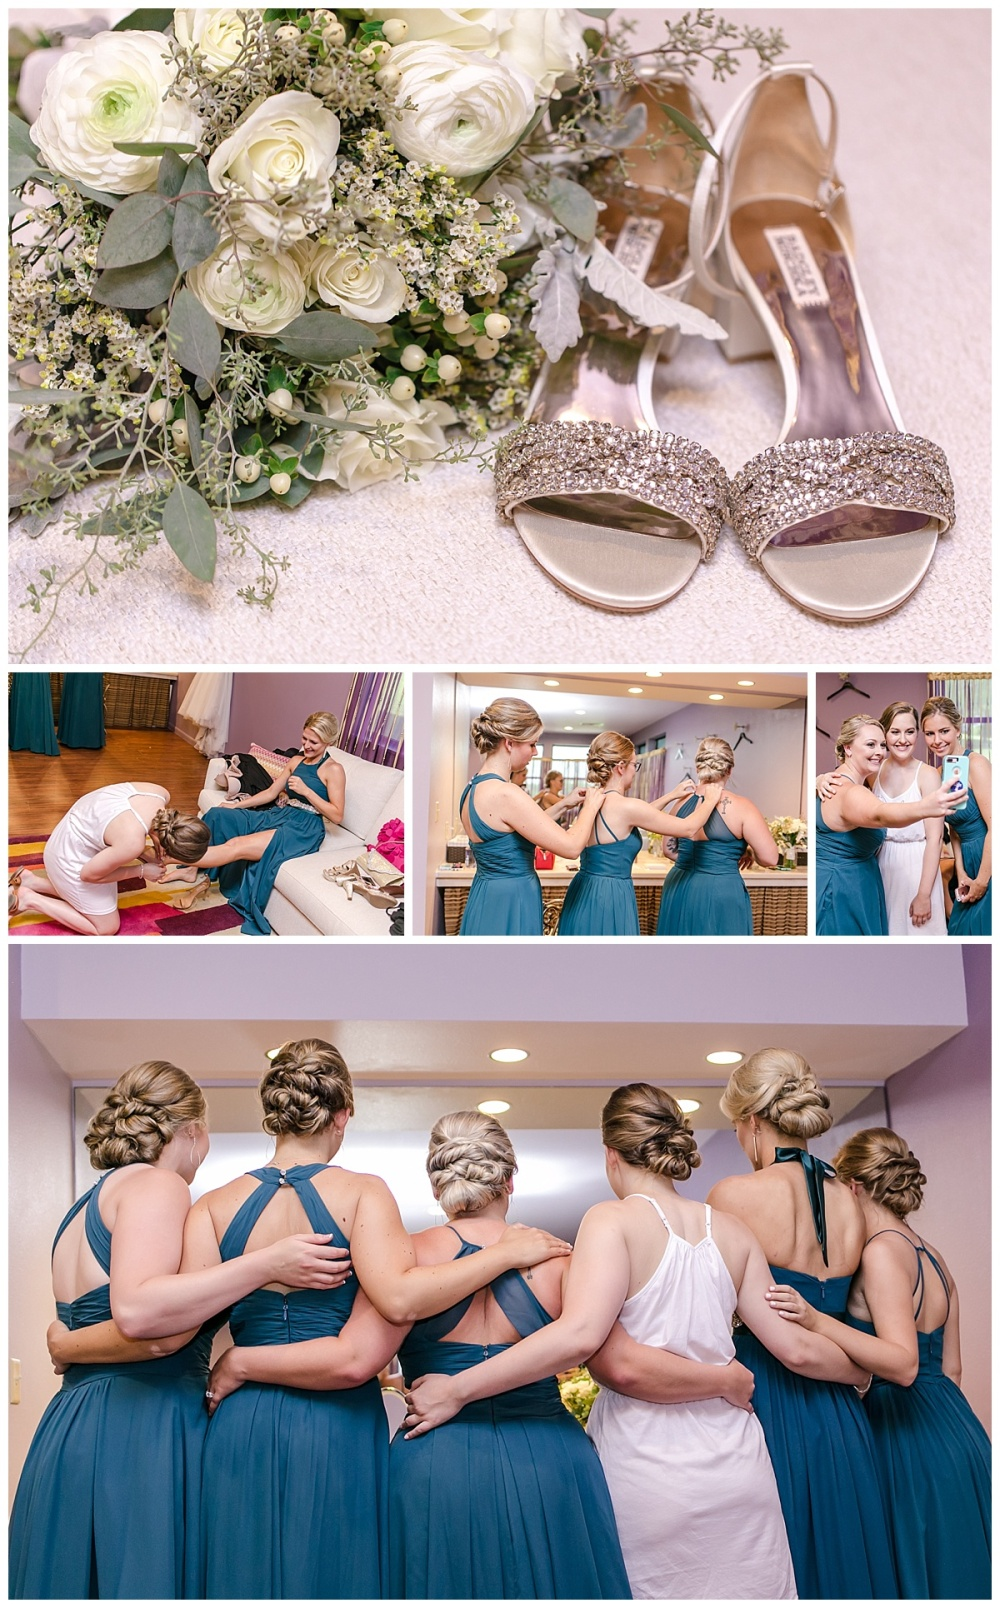 Carly-Barton-Photography-Wedding-Photos-Granberry-Hills-Event-Facility-Ryan-Chelsea-San-Antonio-Texas_0015